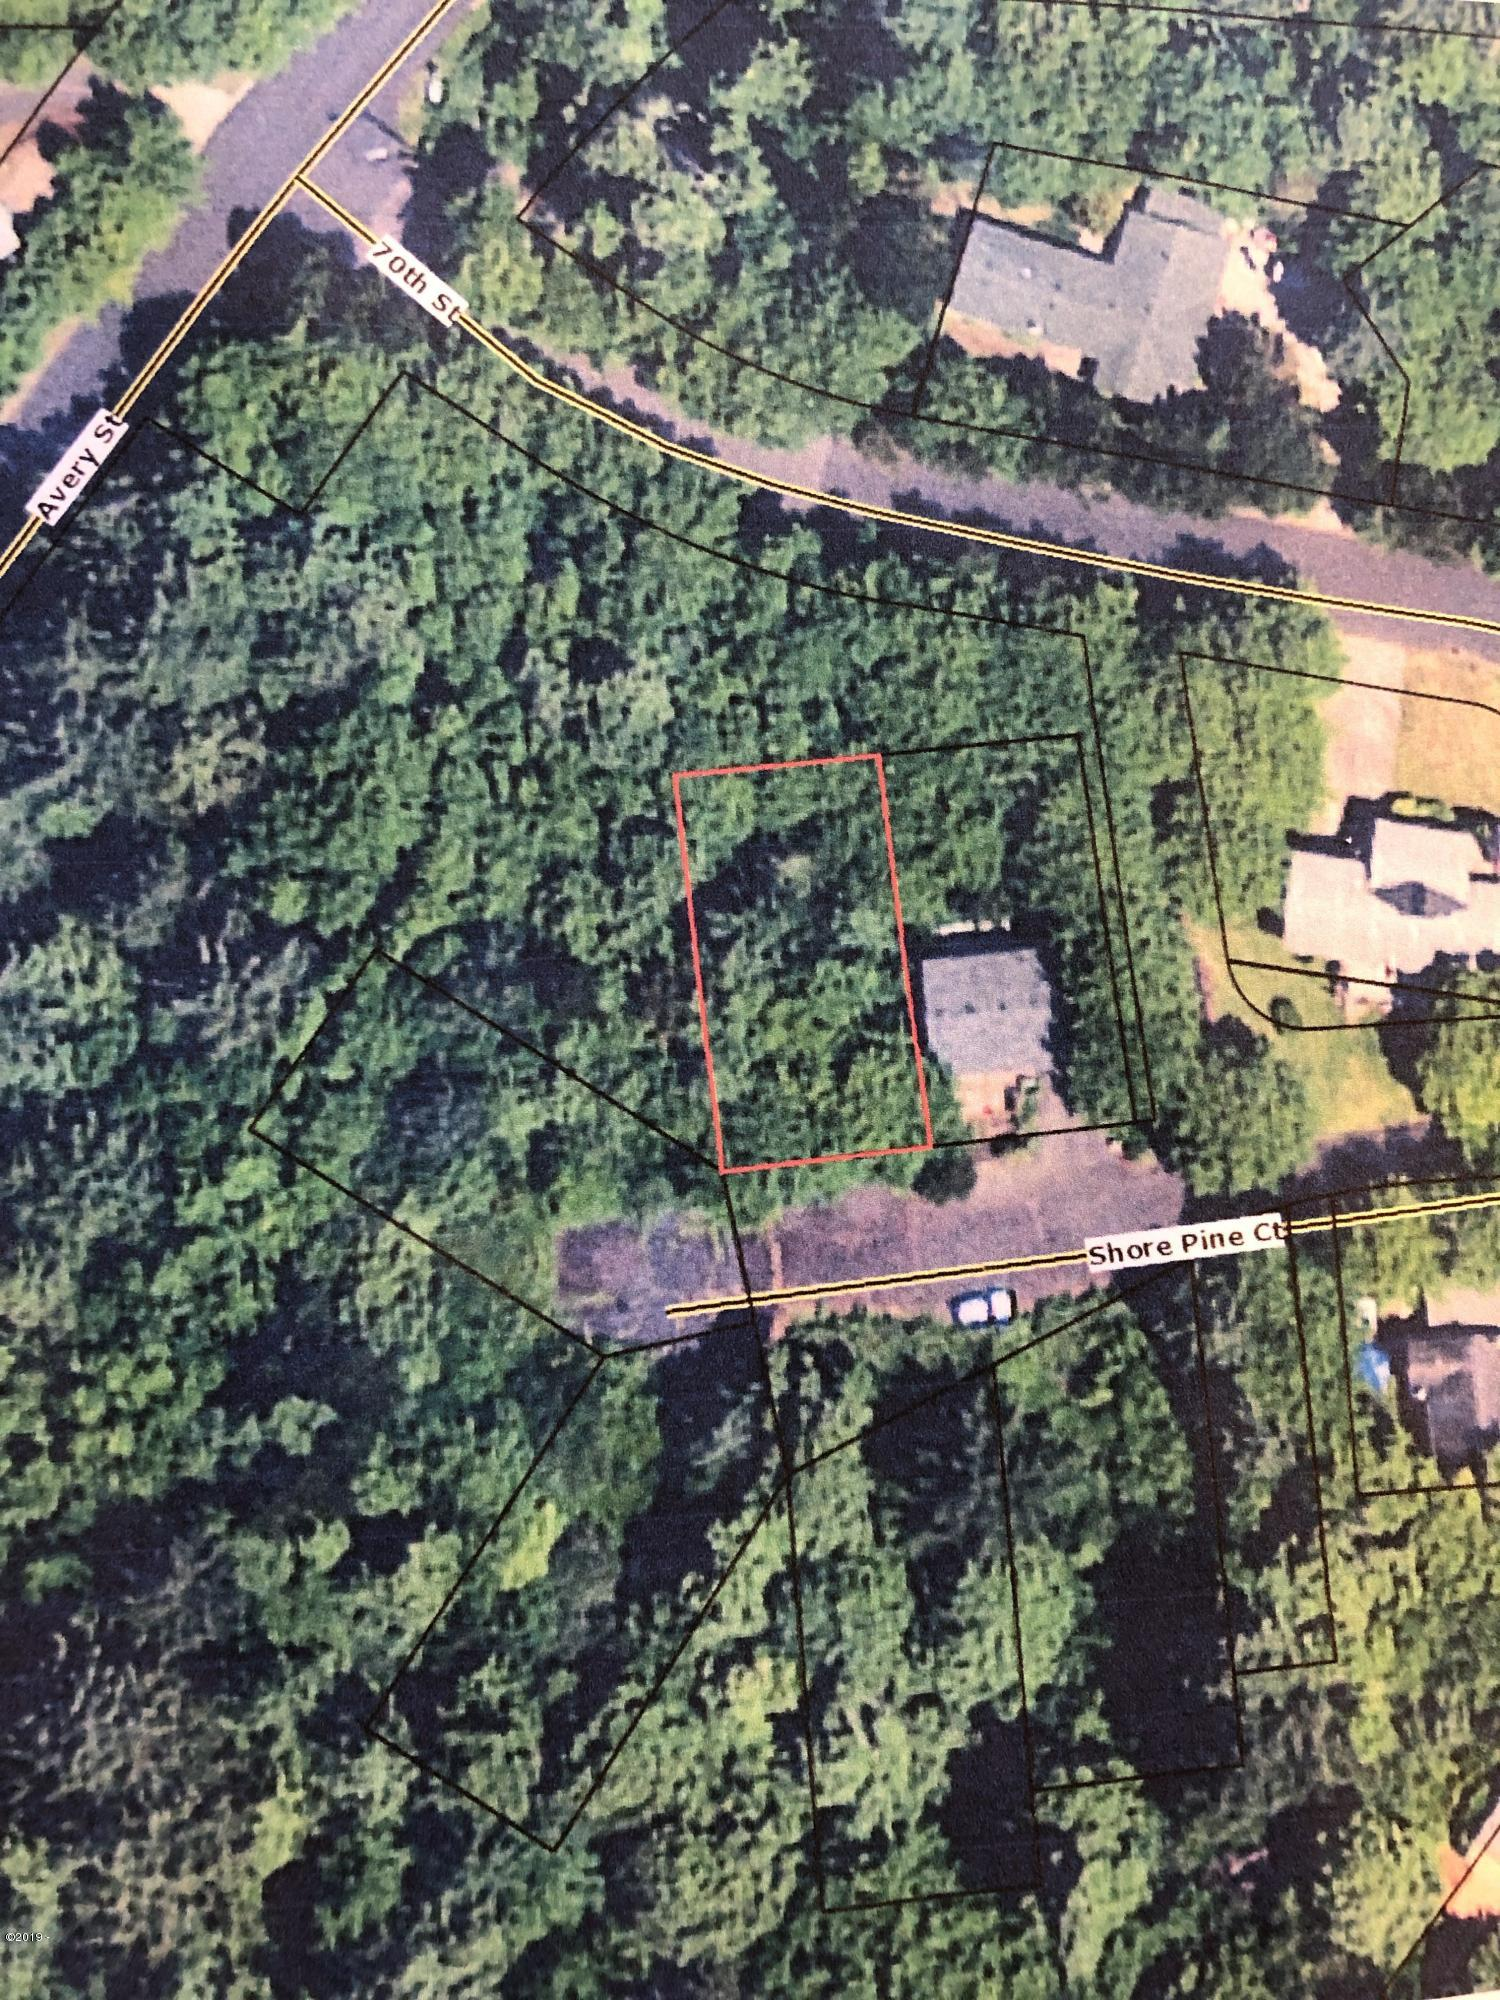 TL 1800 NE Shore Pine Ct, Newport, OR 97365 - Aerial of the Lot